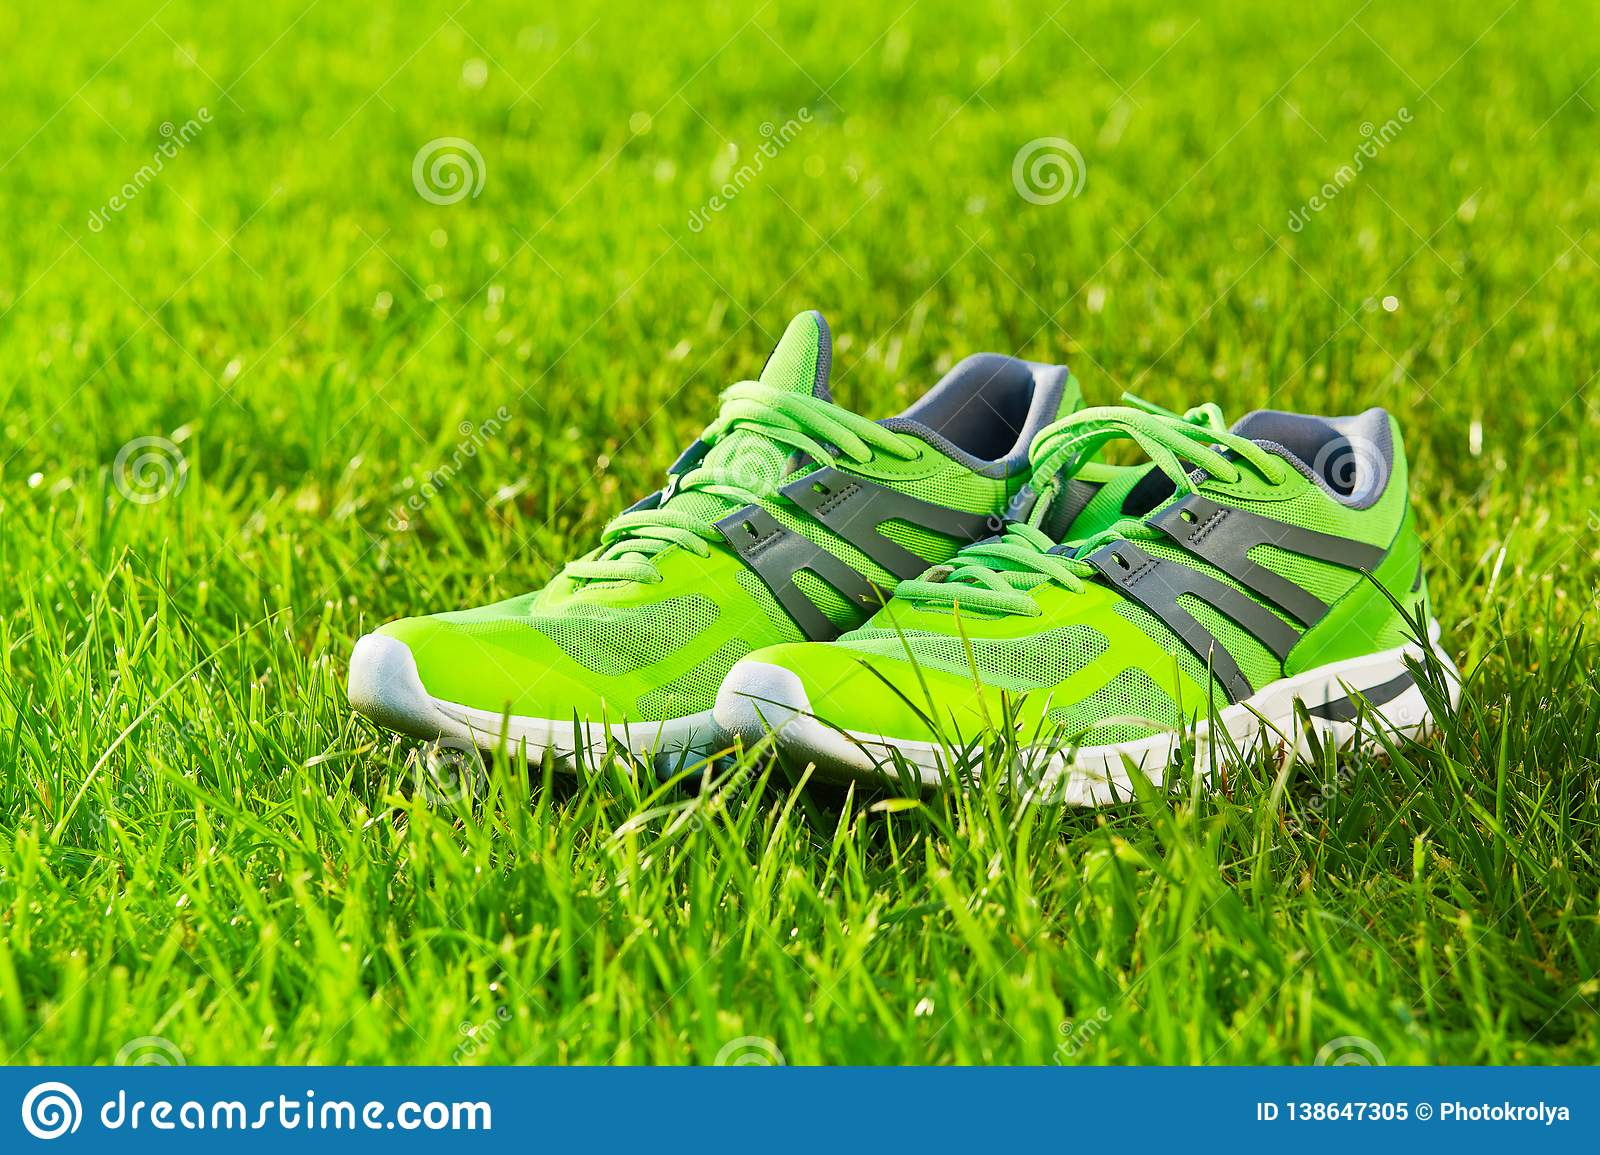 Close up new pairs of green running shoes / sneaker shoes on green grass field in the park